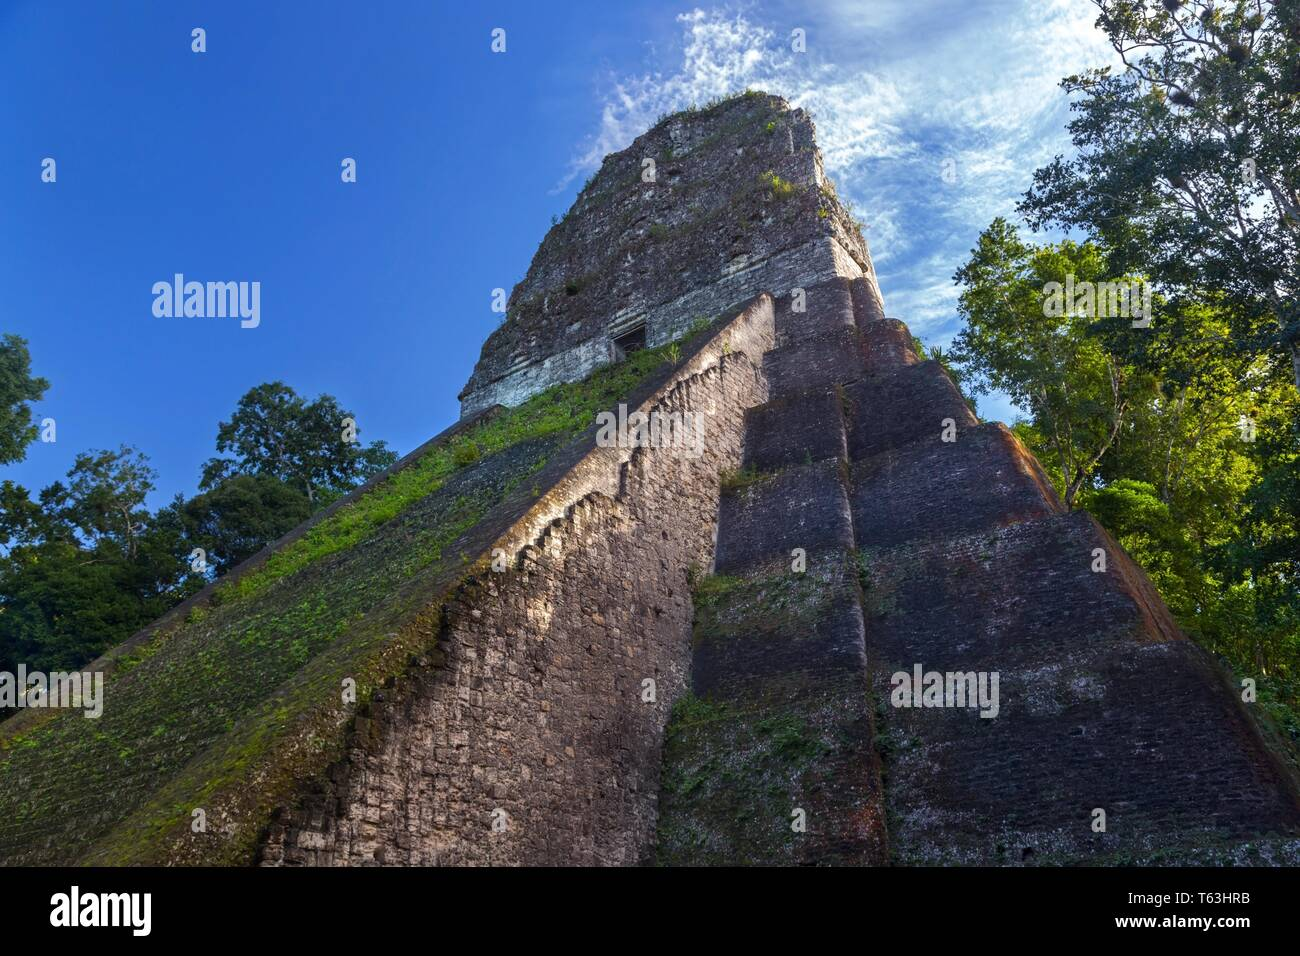 side-view-of-ancient-mayan-pyramid-ruins